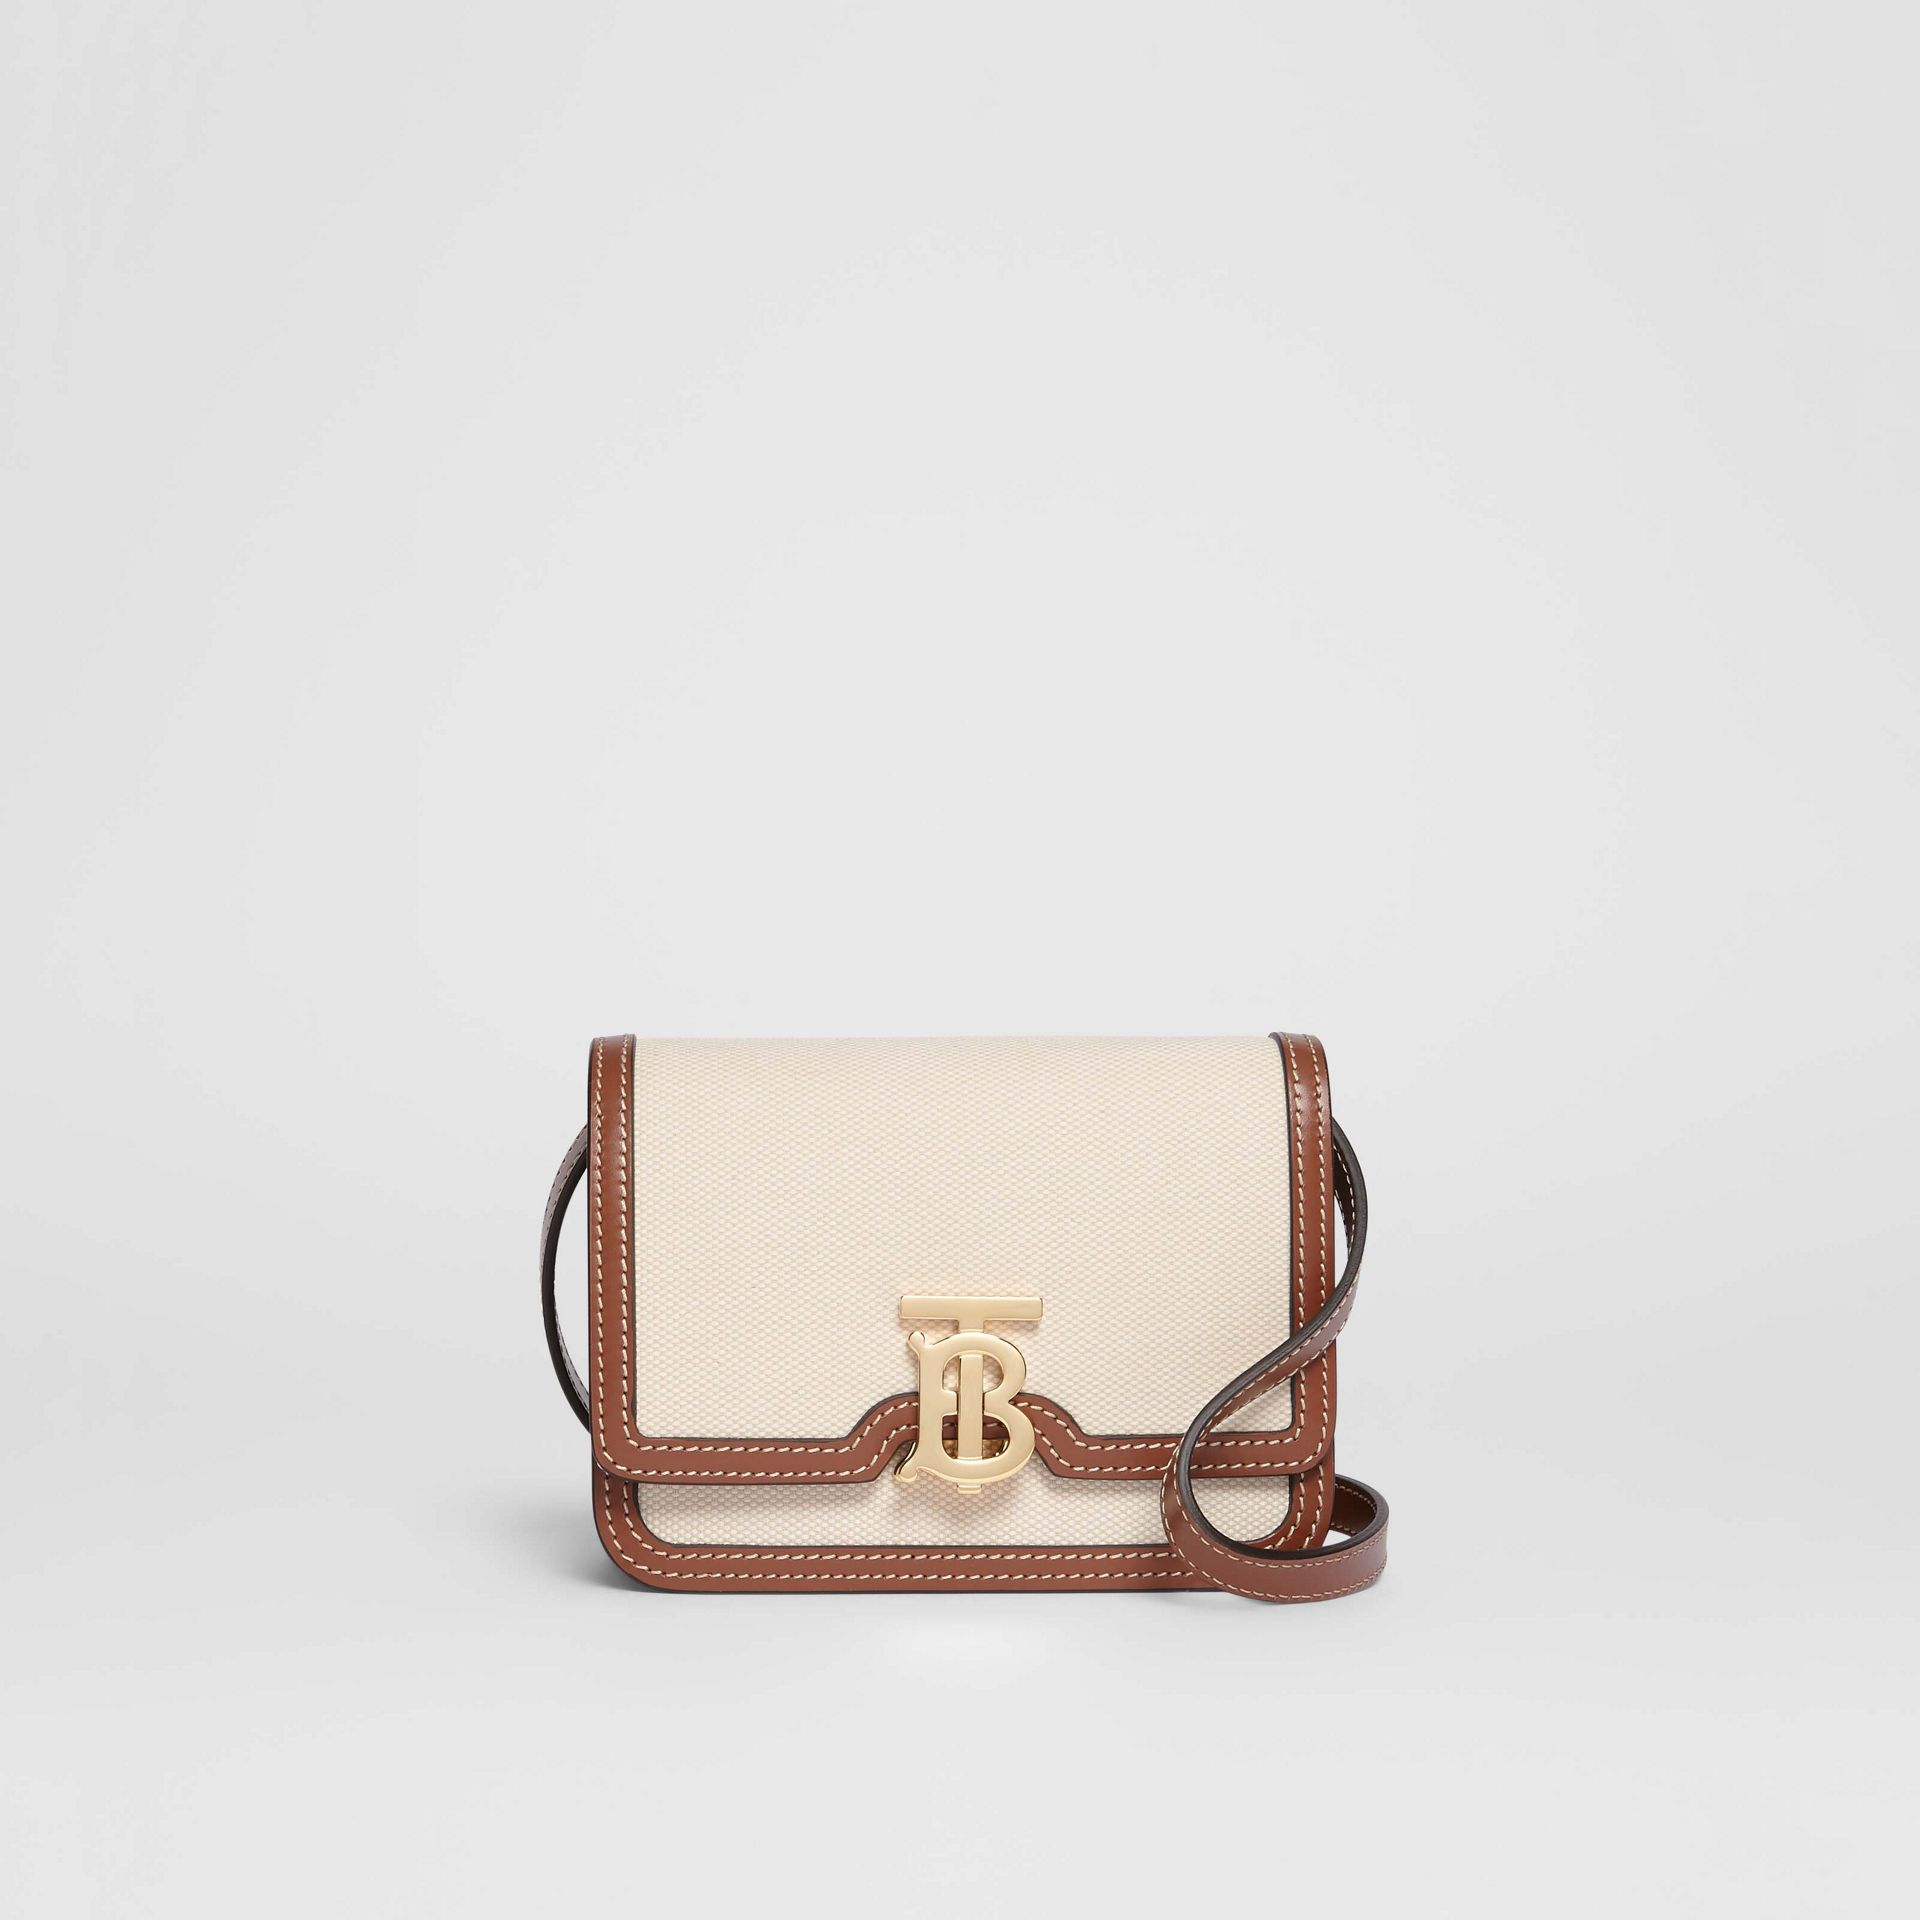 Mini Two-tone Canvas and Leather TB Bag in Natural/malt Brown - Women | Burberry - gallery image 0